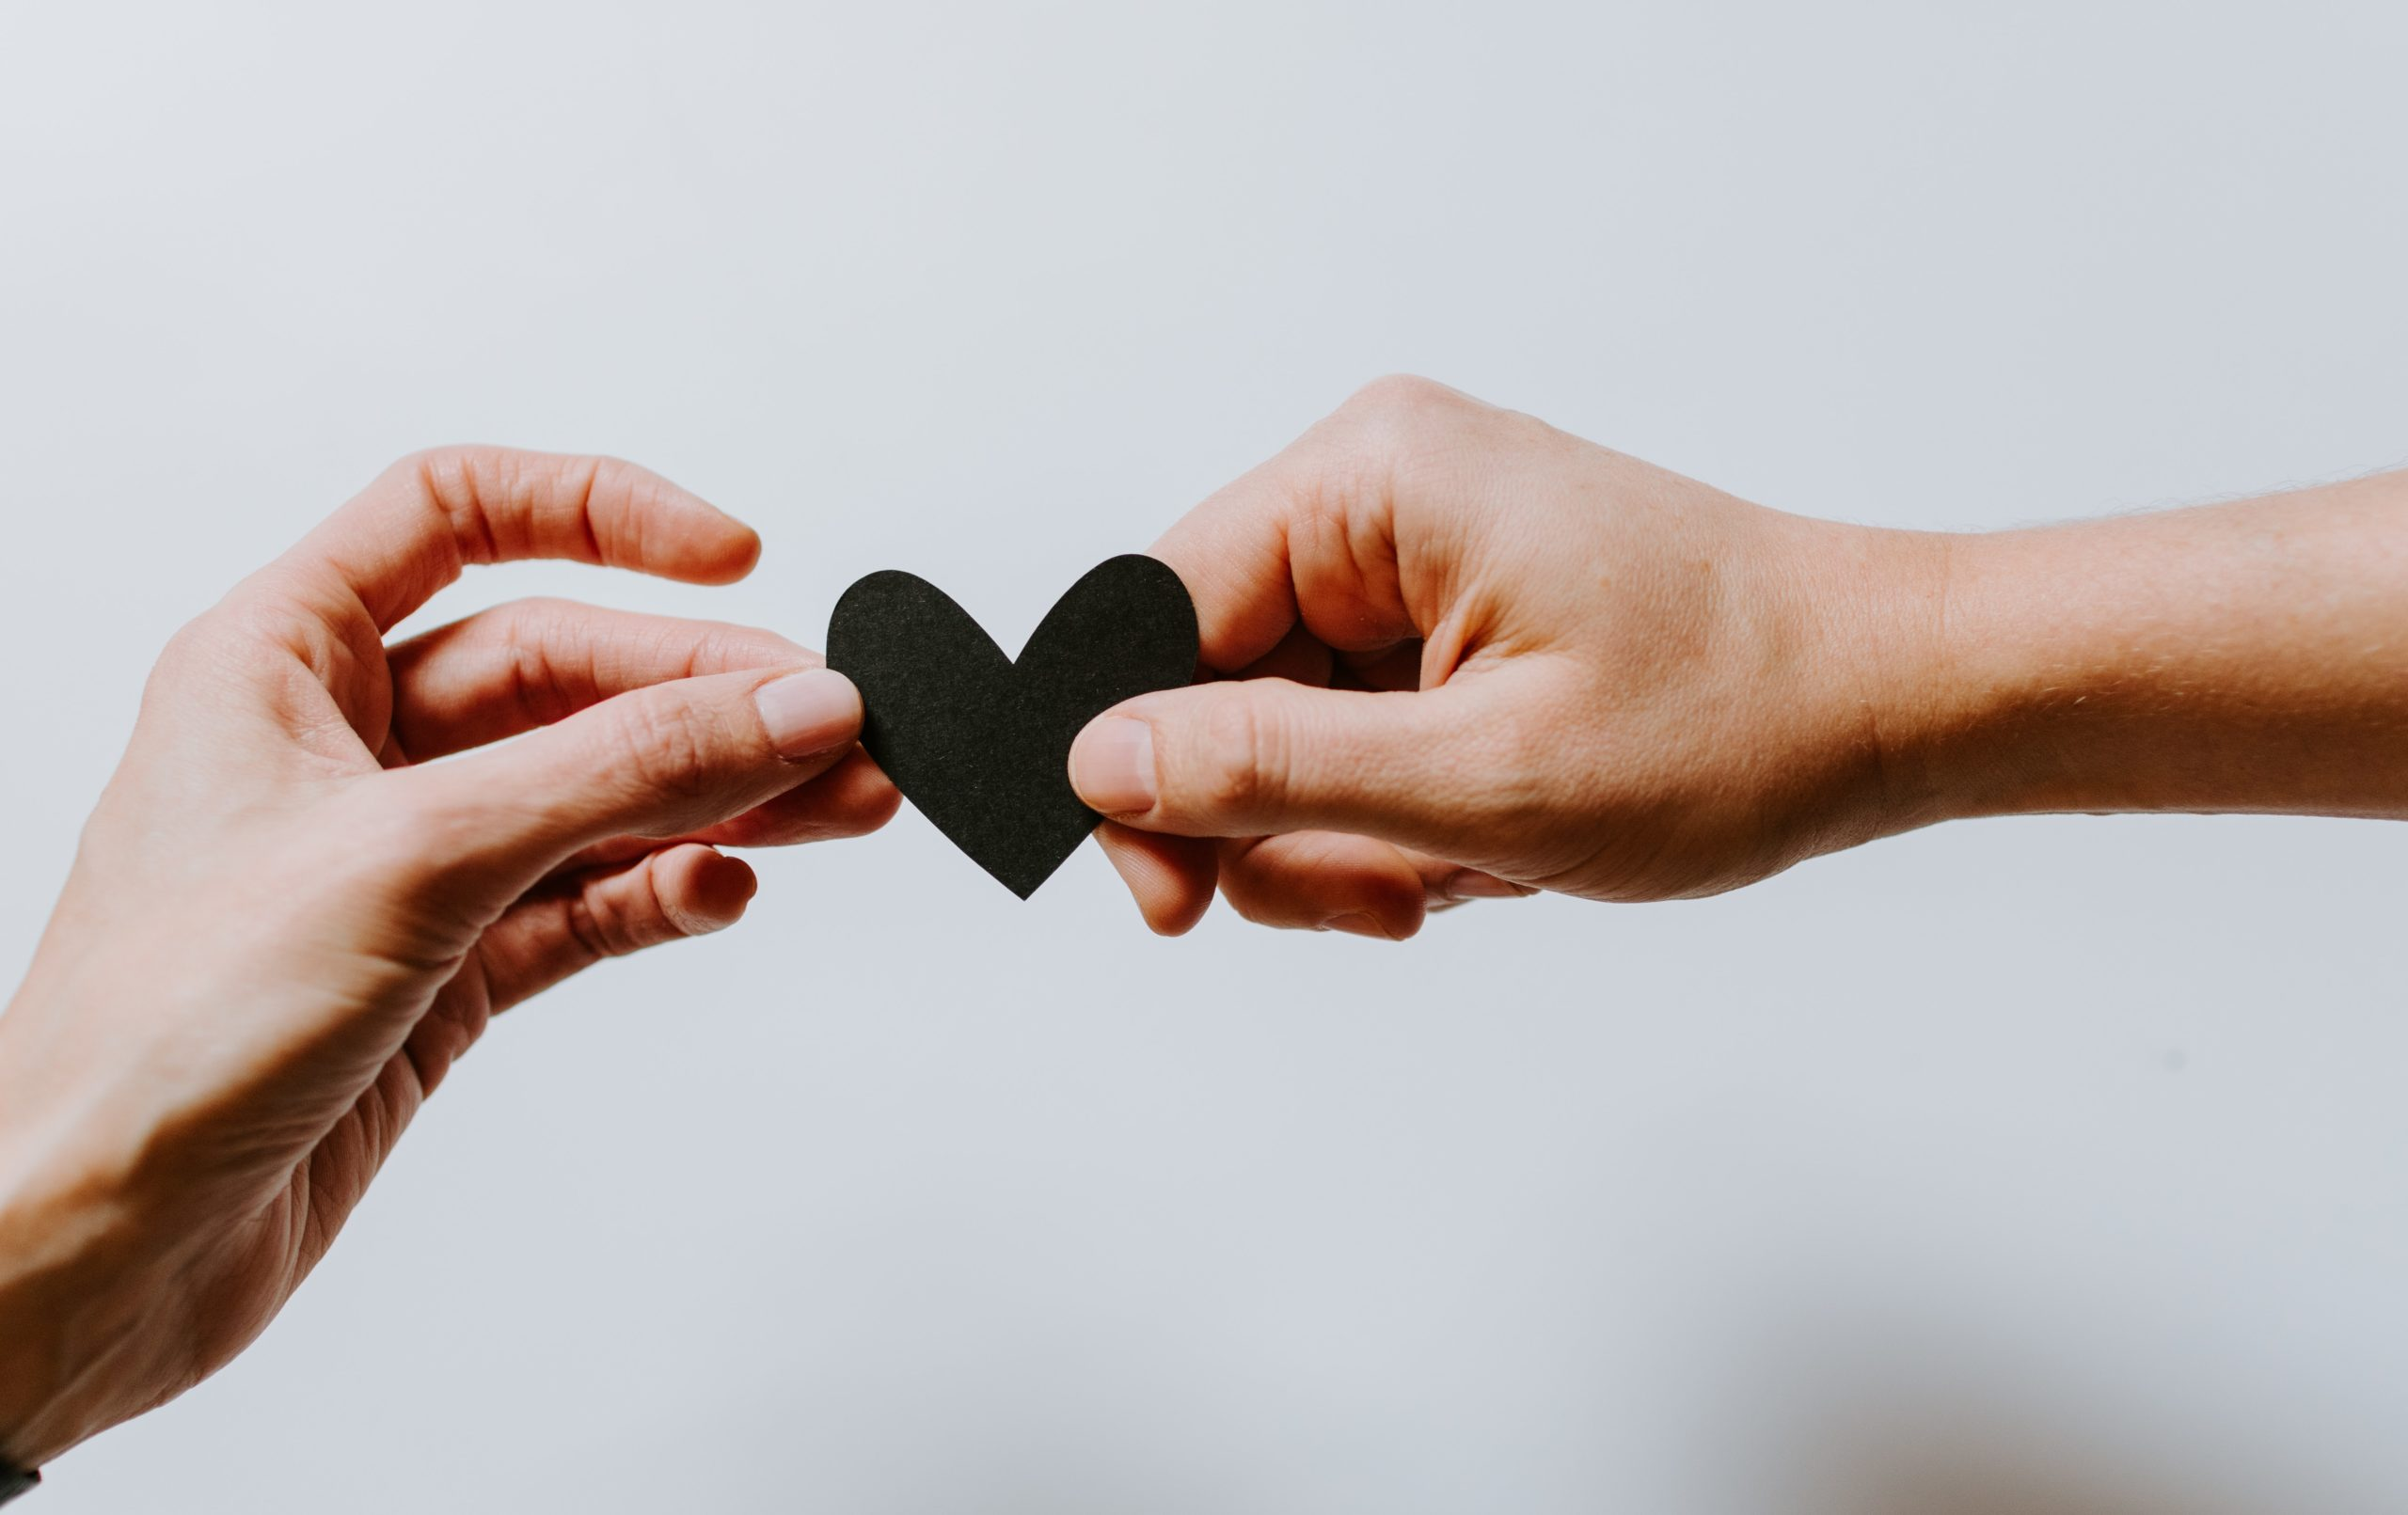 Two hands holding a papercut heart. Image by Kelly Sikkema